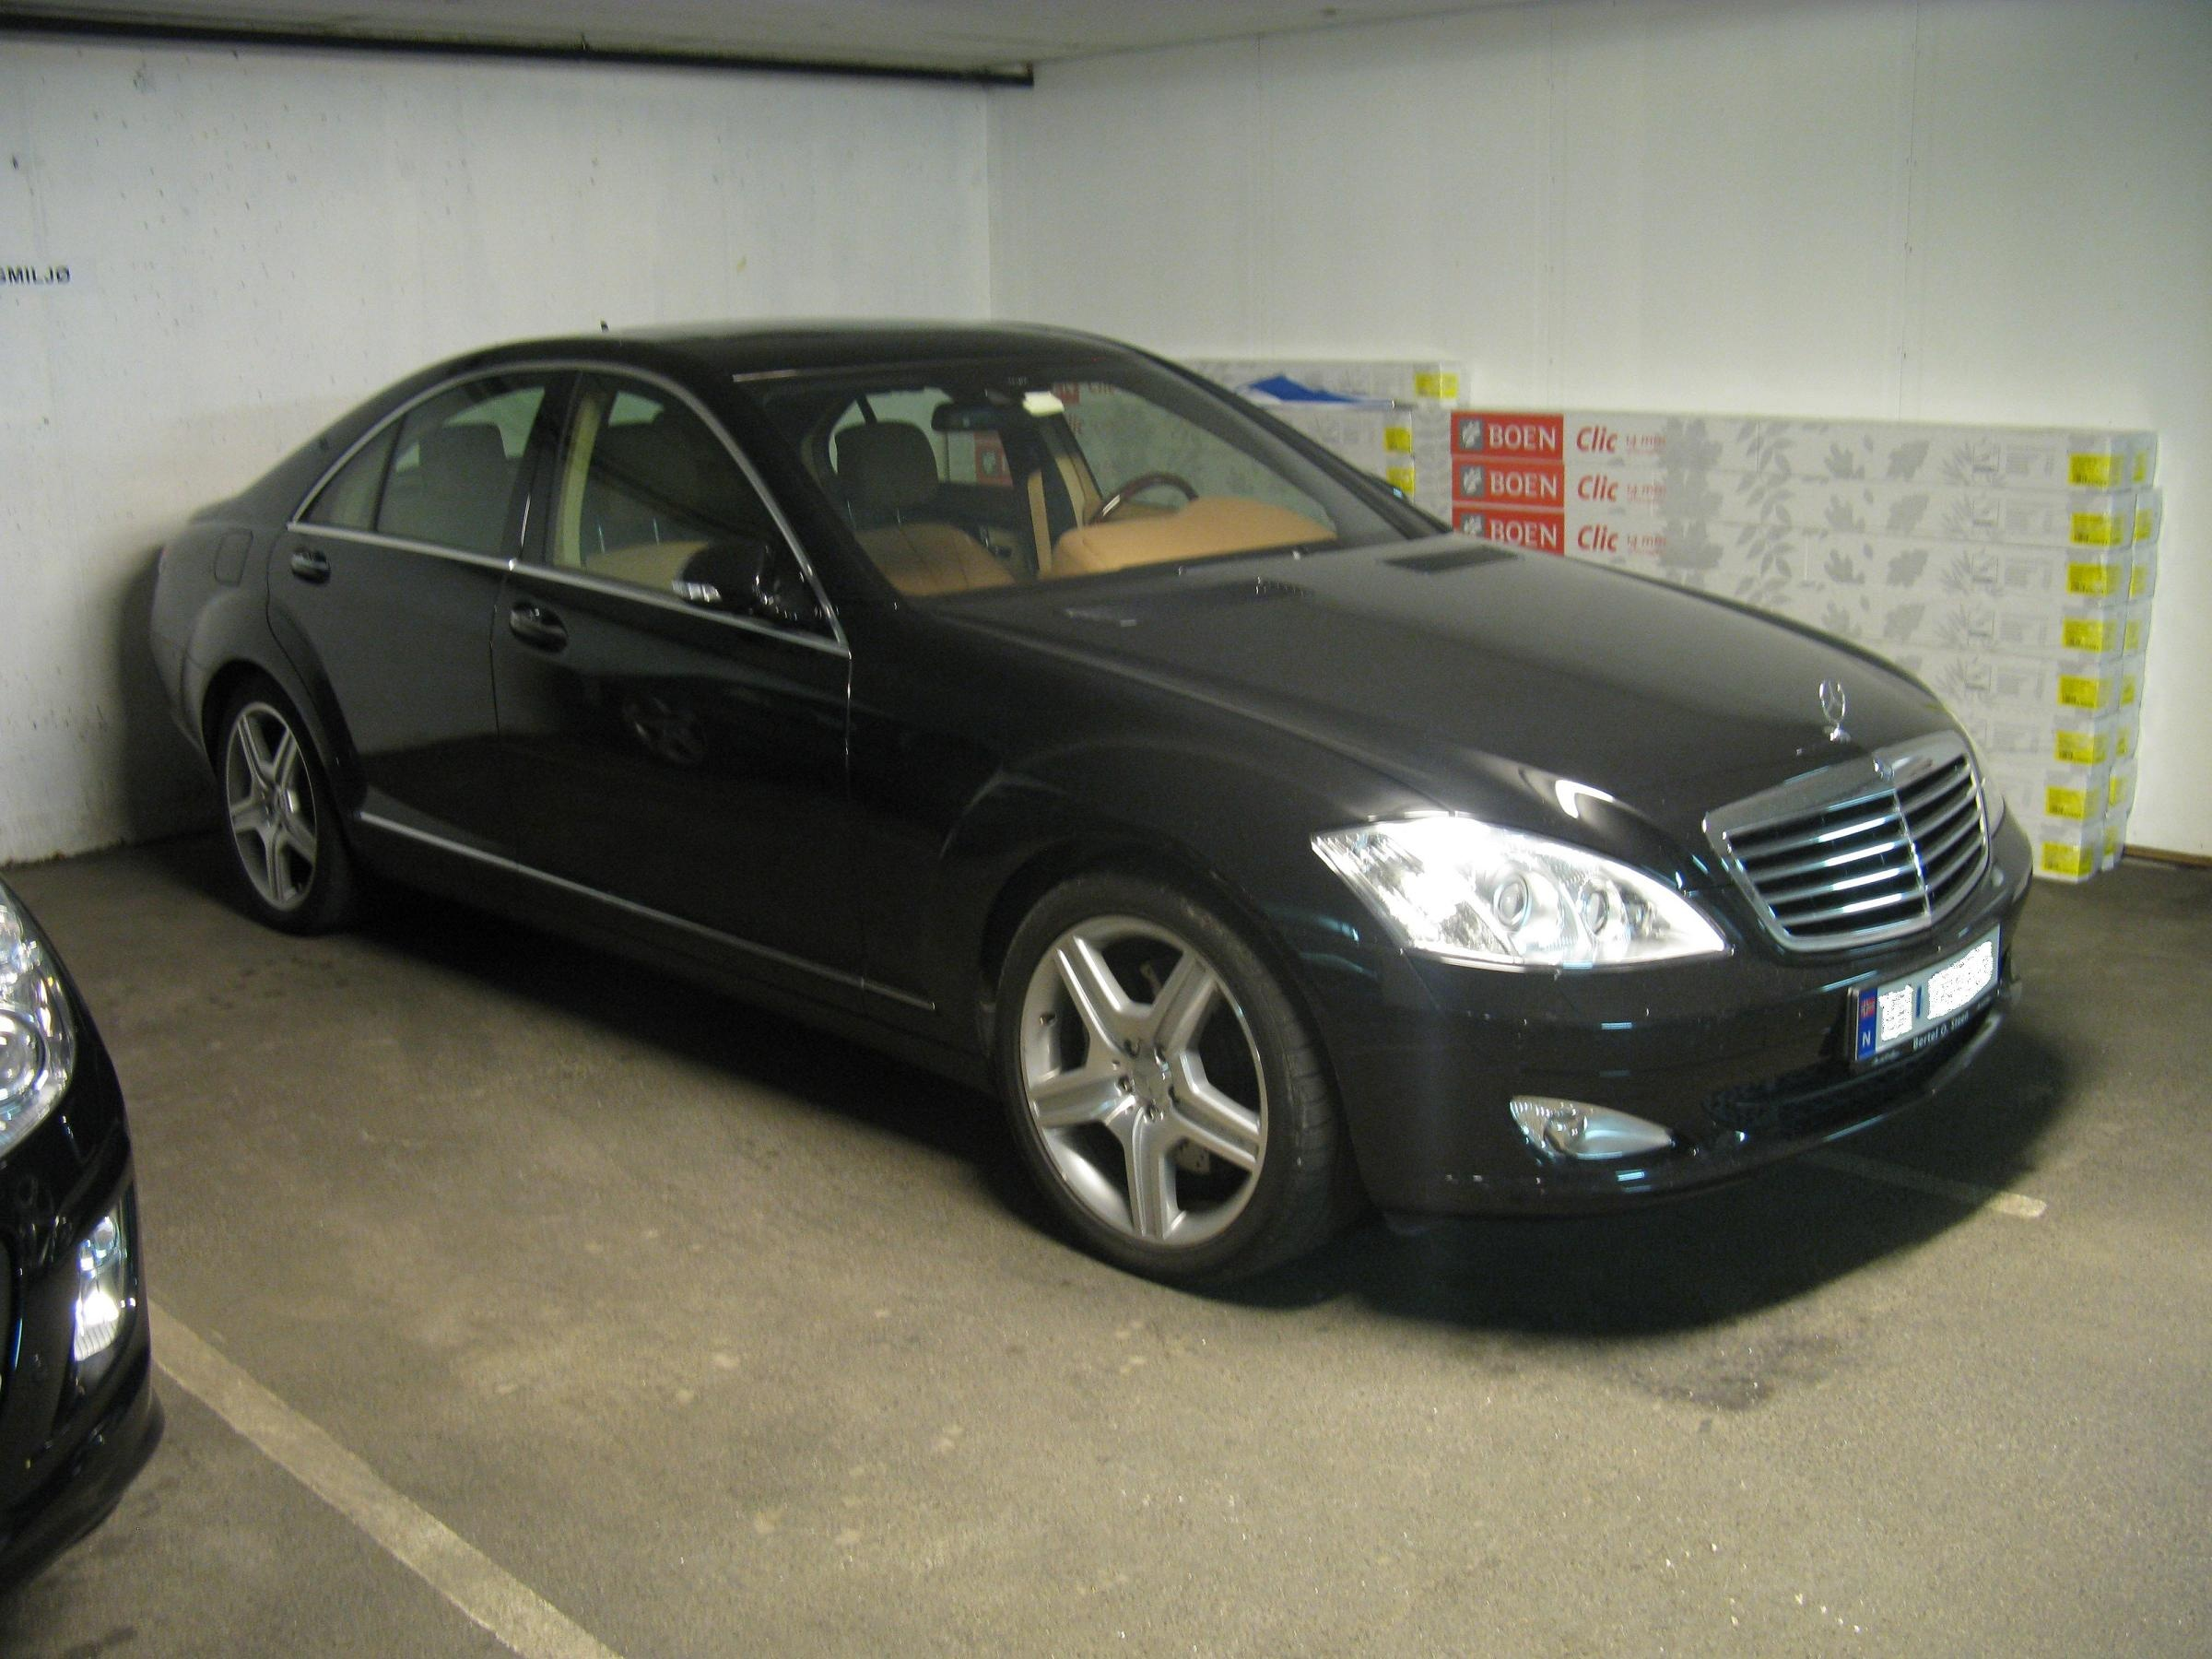 Mercedes S320 Modified Fresh Filemercedes Benz S320 Cdi 4 Matic 4734619918 Wikimedia Commons-2434 Of Fresh Mercedes S320 Modified-2434